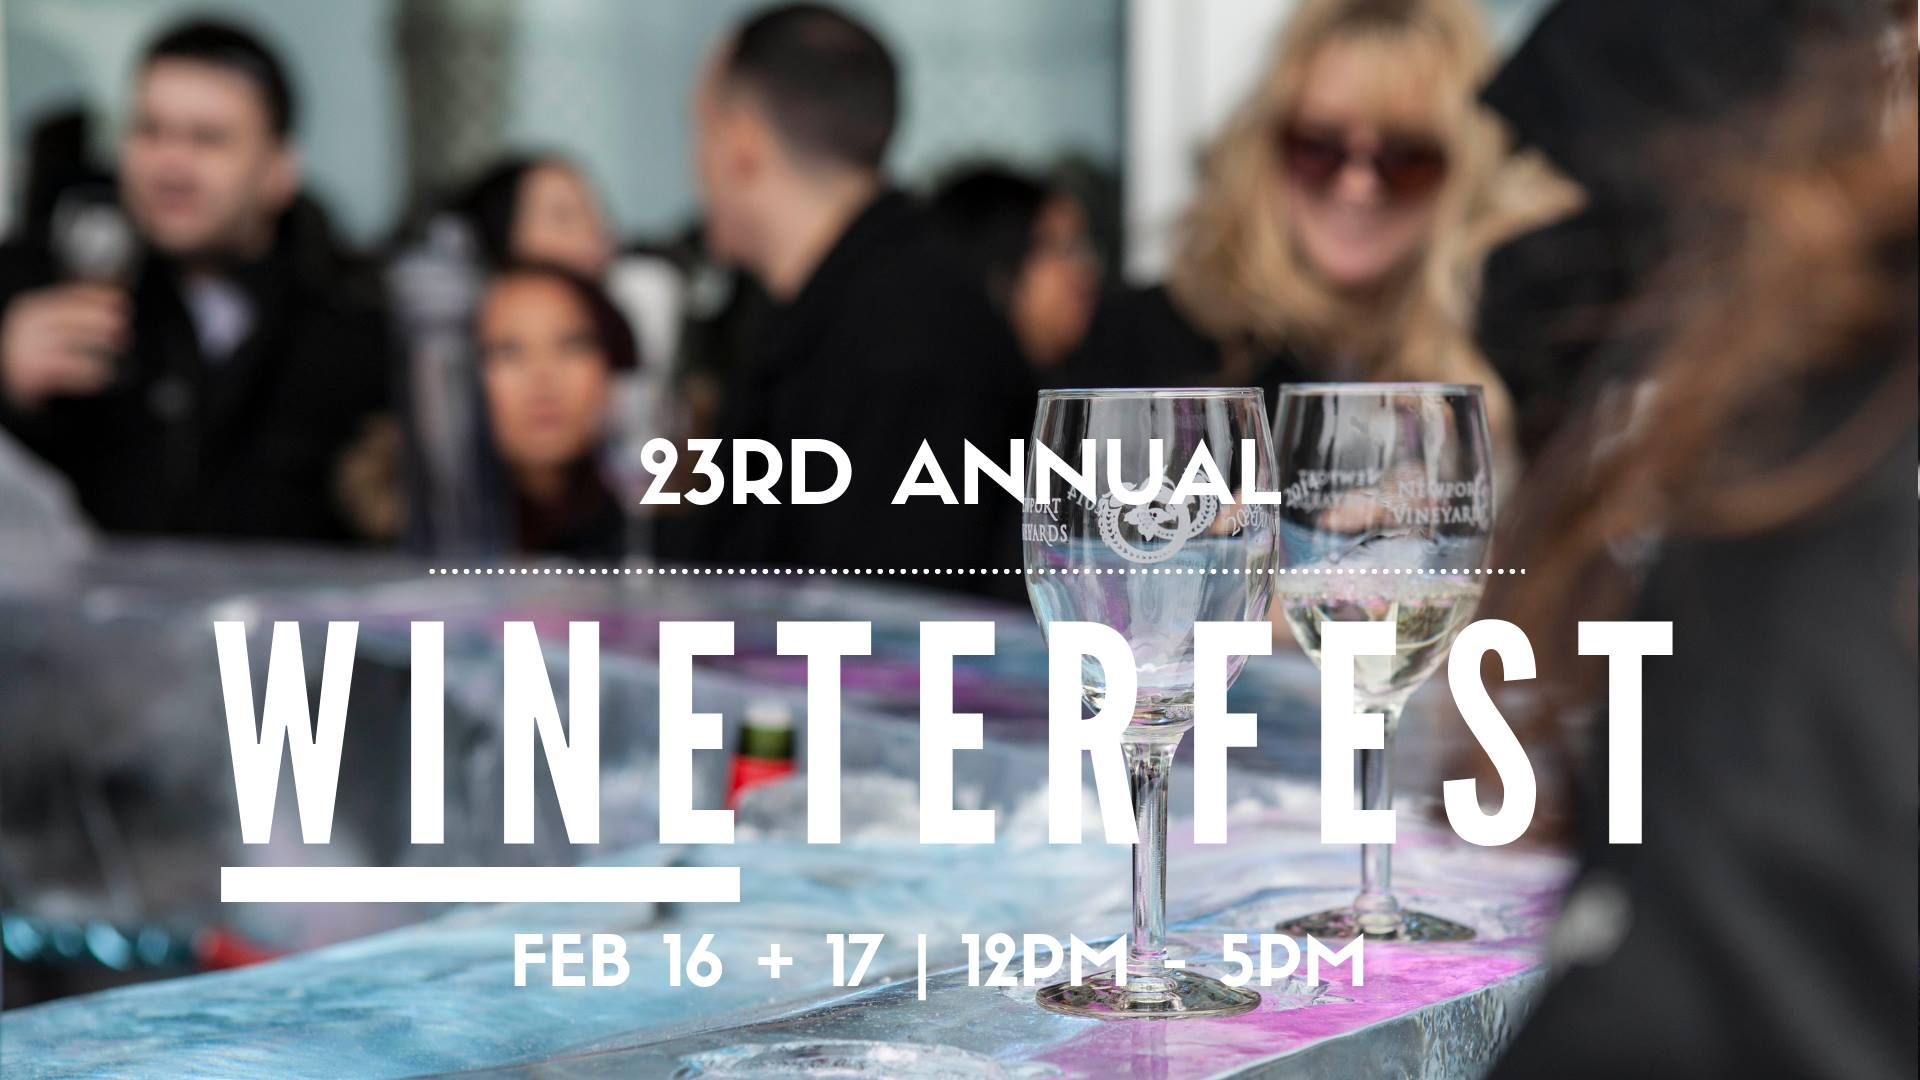 February 16-17, 2019: Newport Vineyards' WINEterfest Weekend